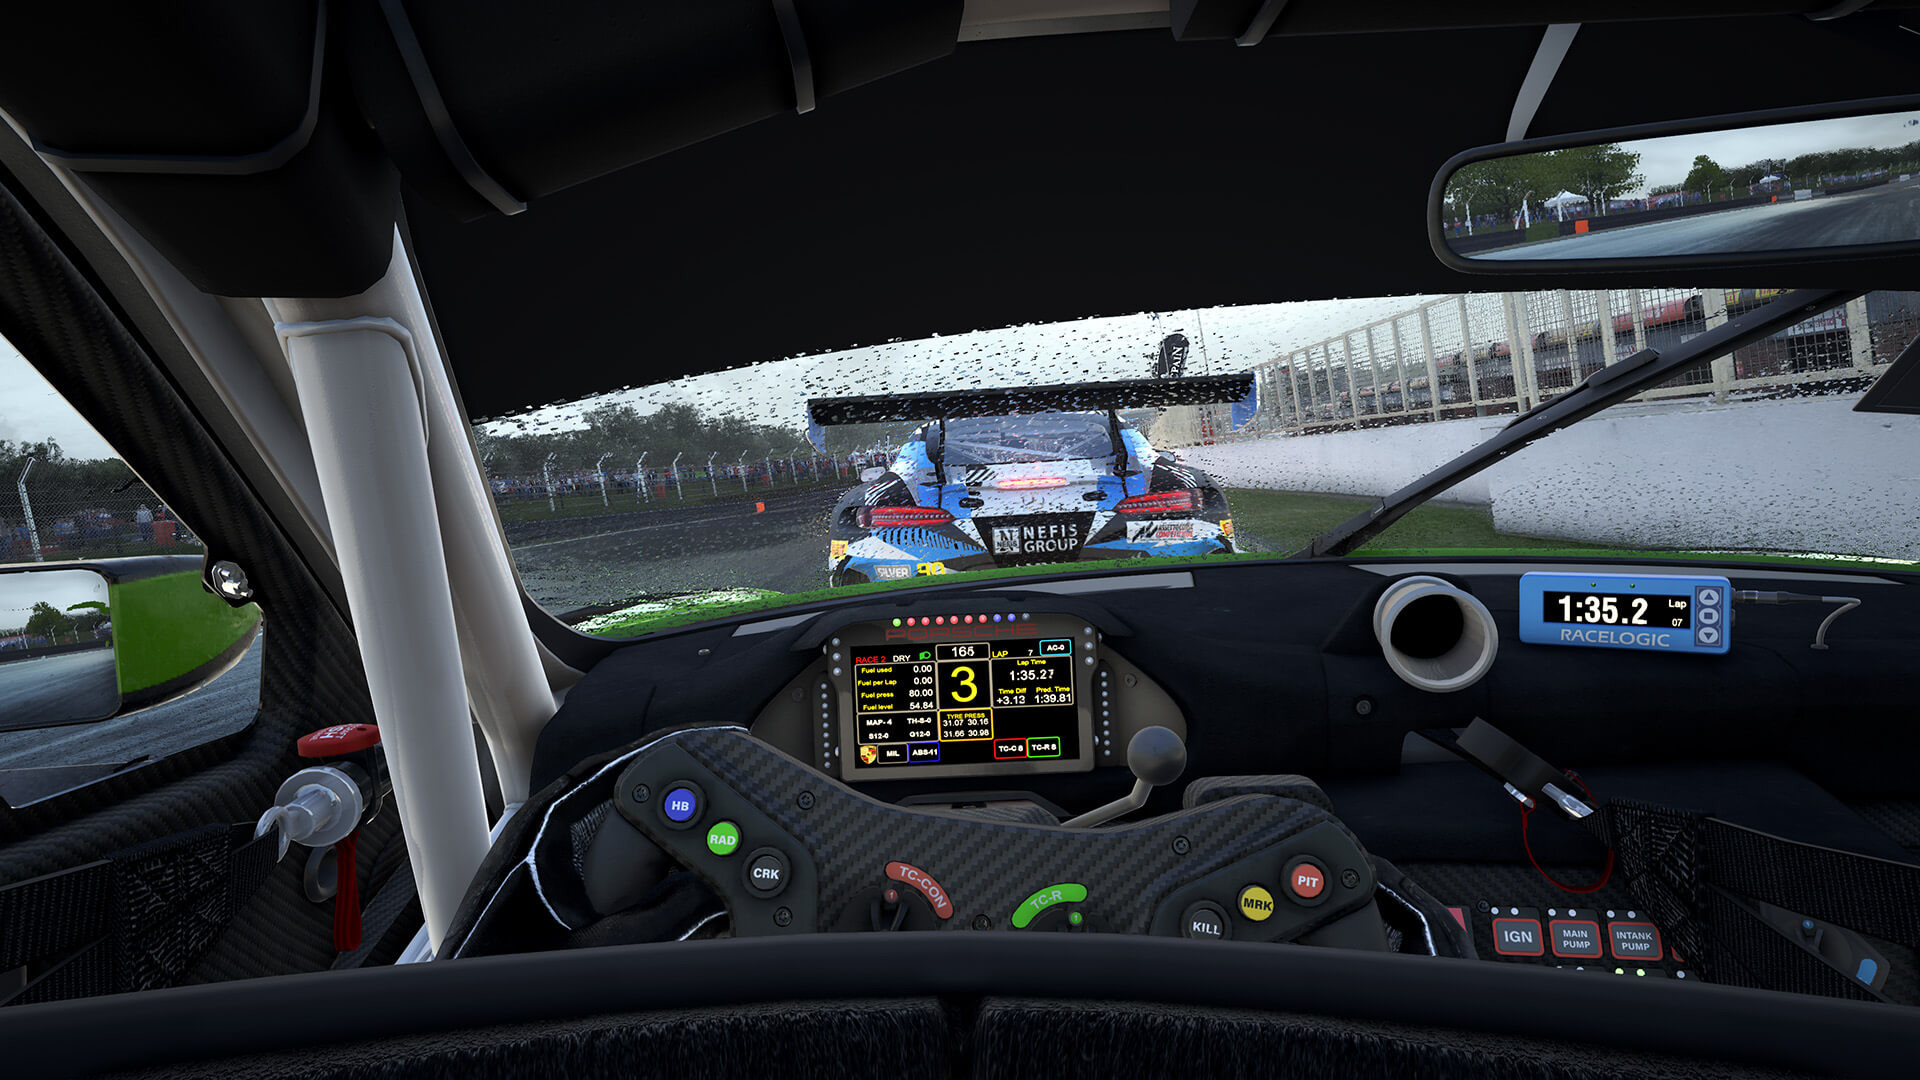 An image of the interior of a racing car within Assetto Corsa.